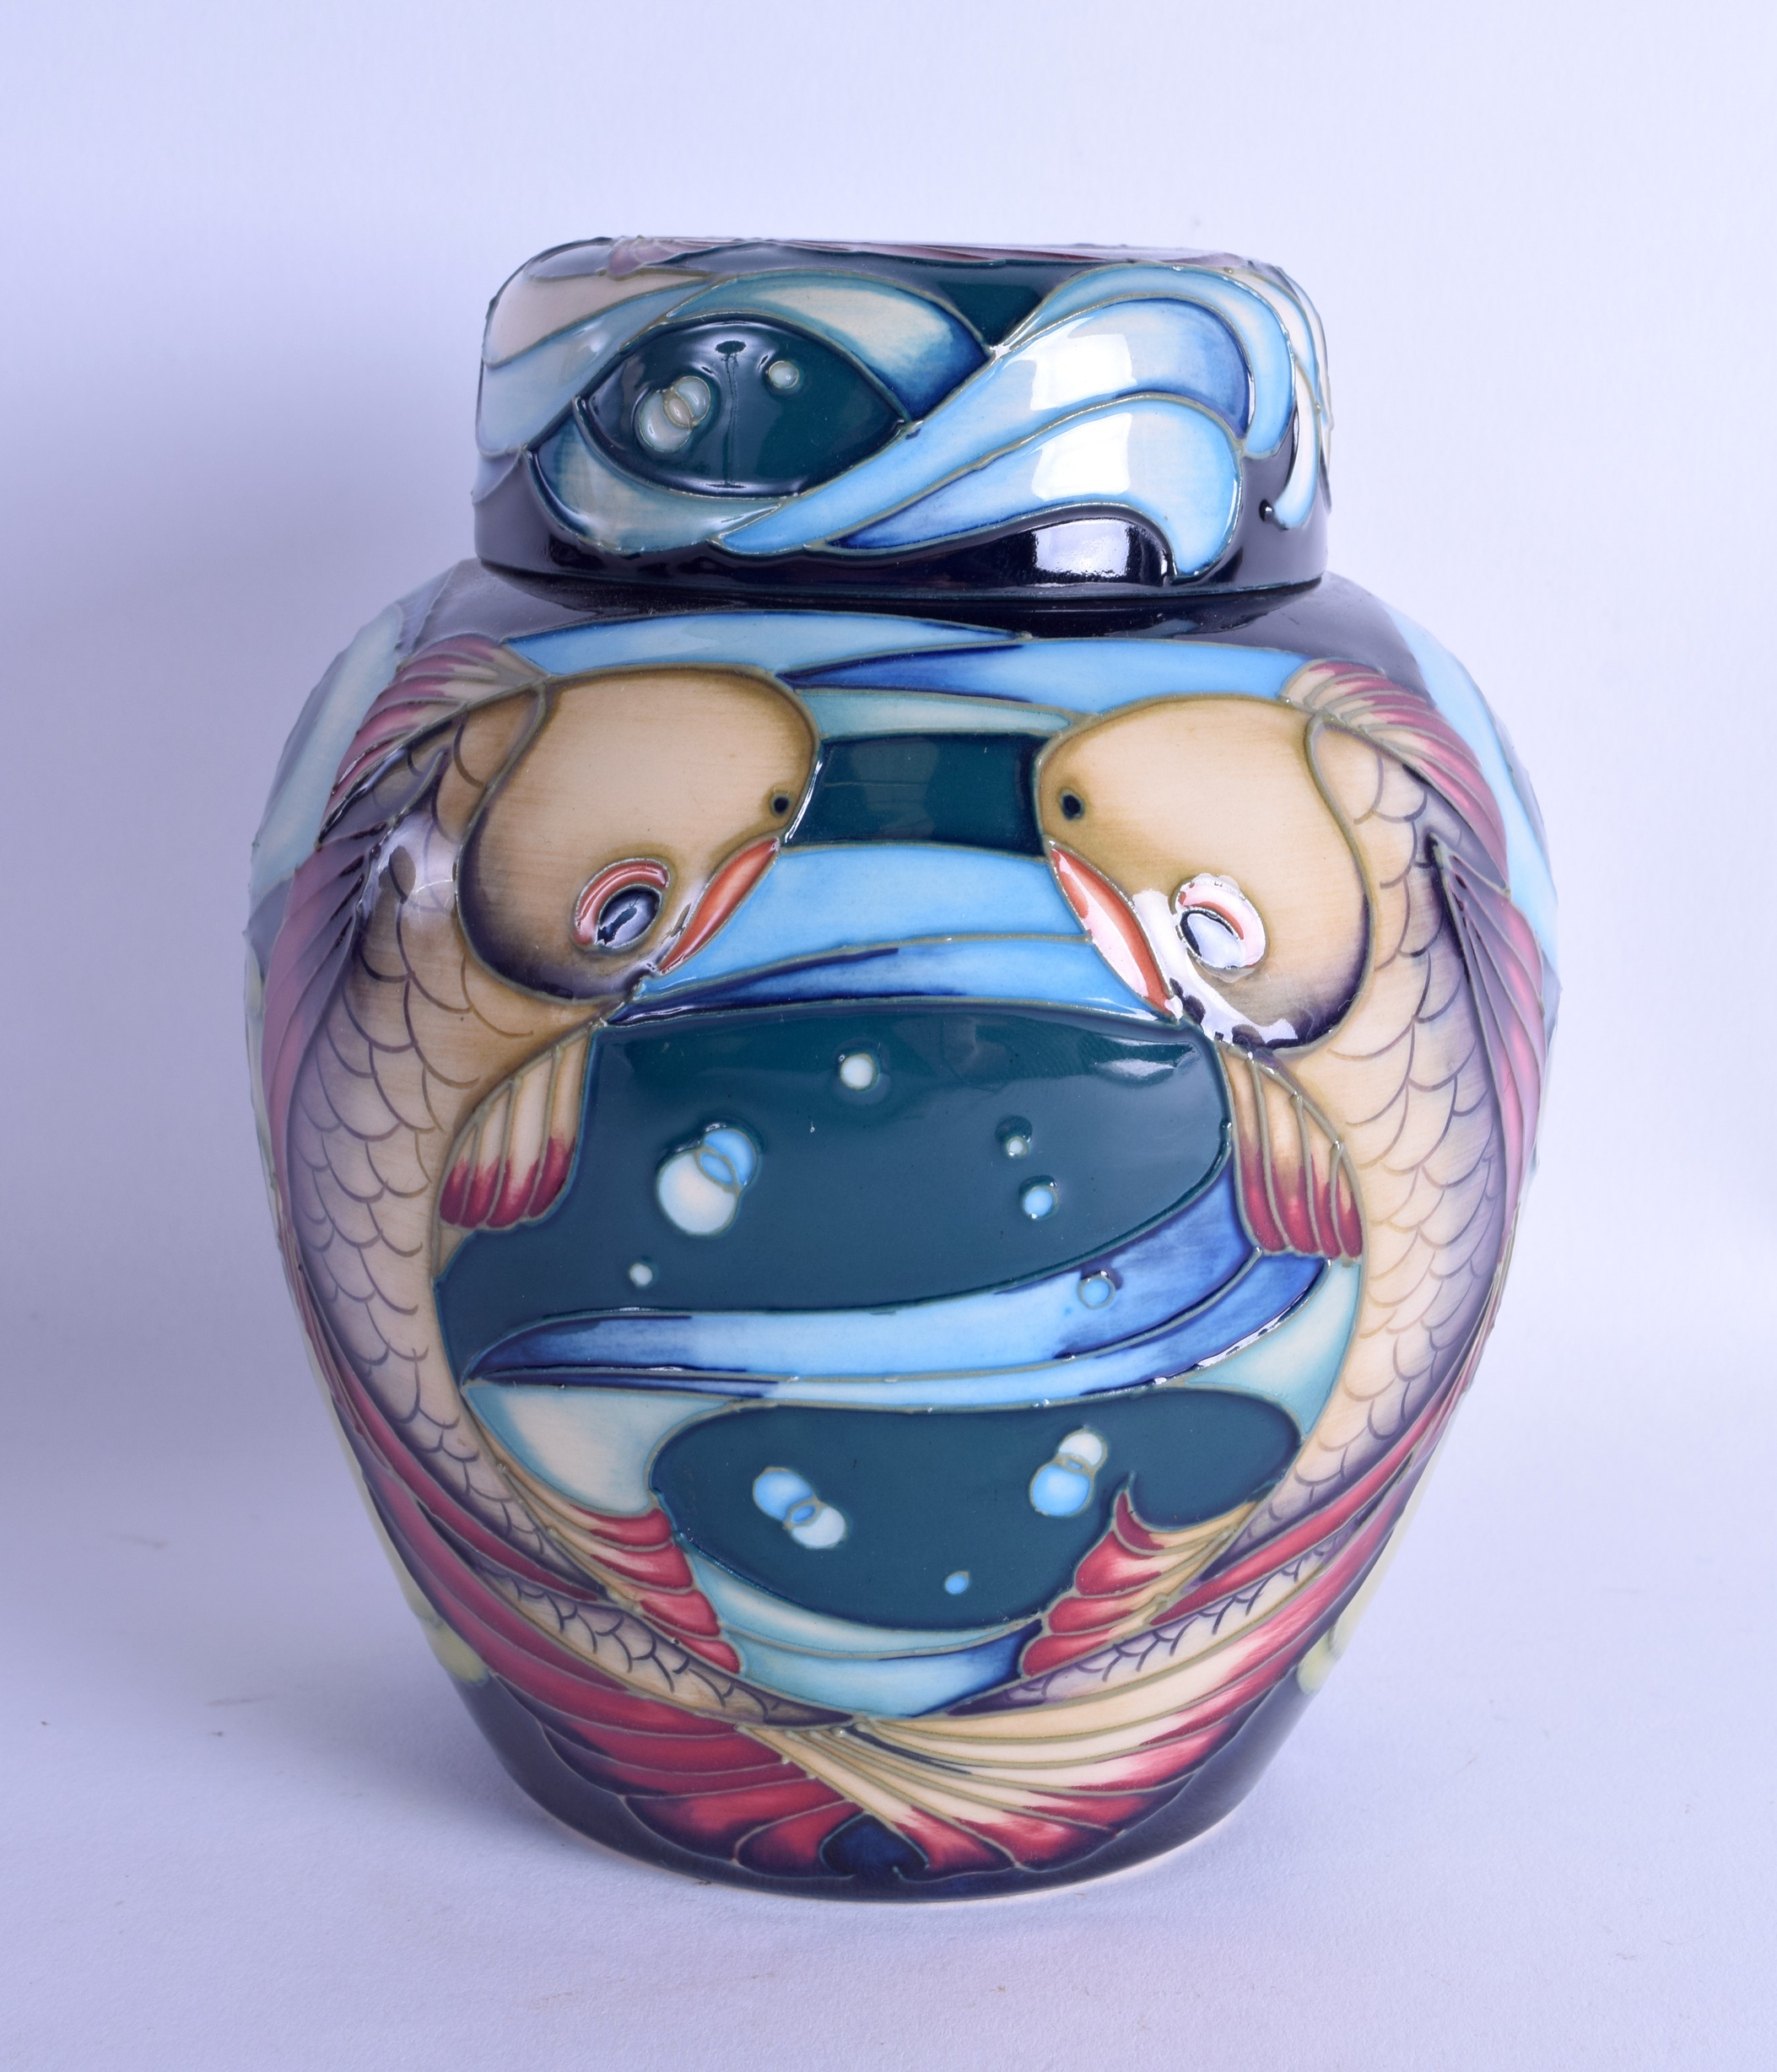 Lot 39 - A MOORCROFT 'LAGOON' GINGER JAR designed by Philip Gibson. No 17 of 50. 15 cm high.